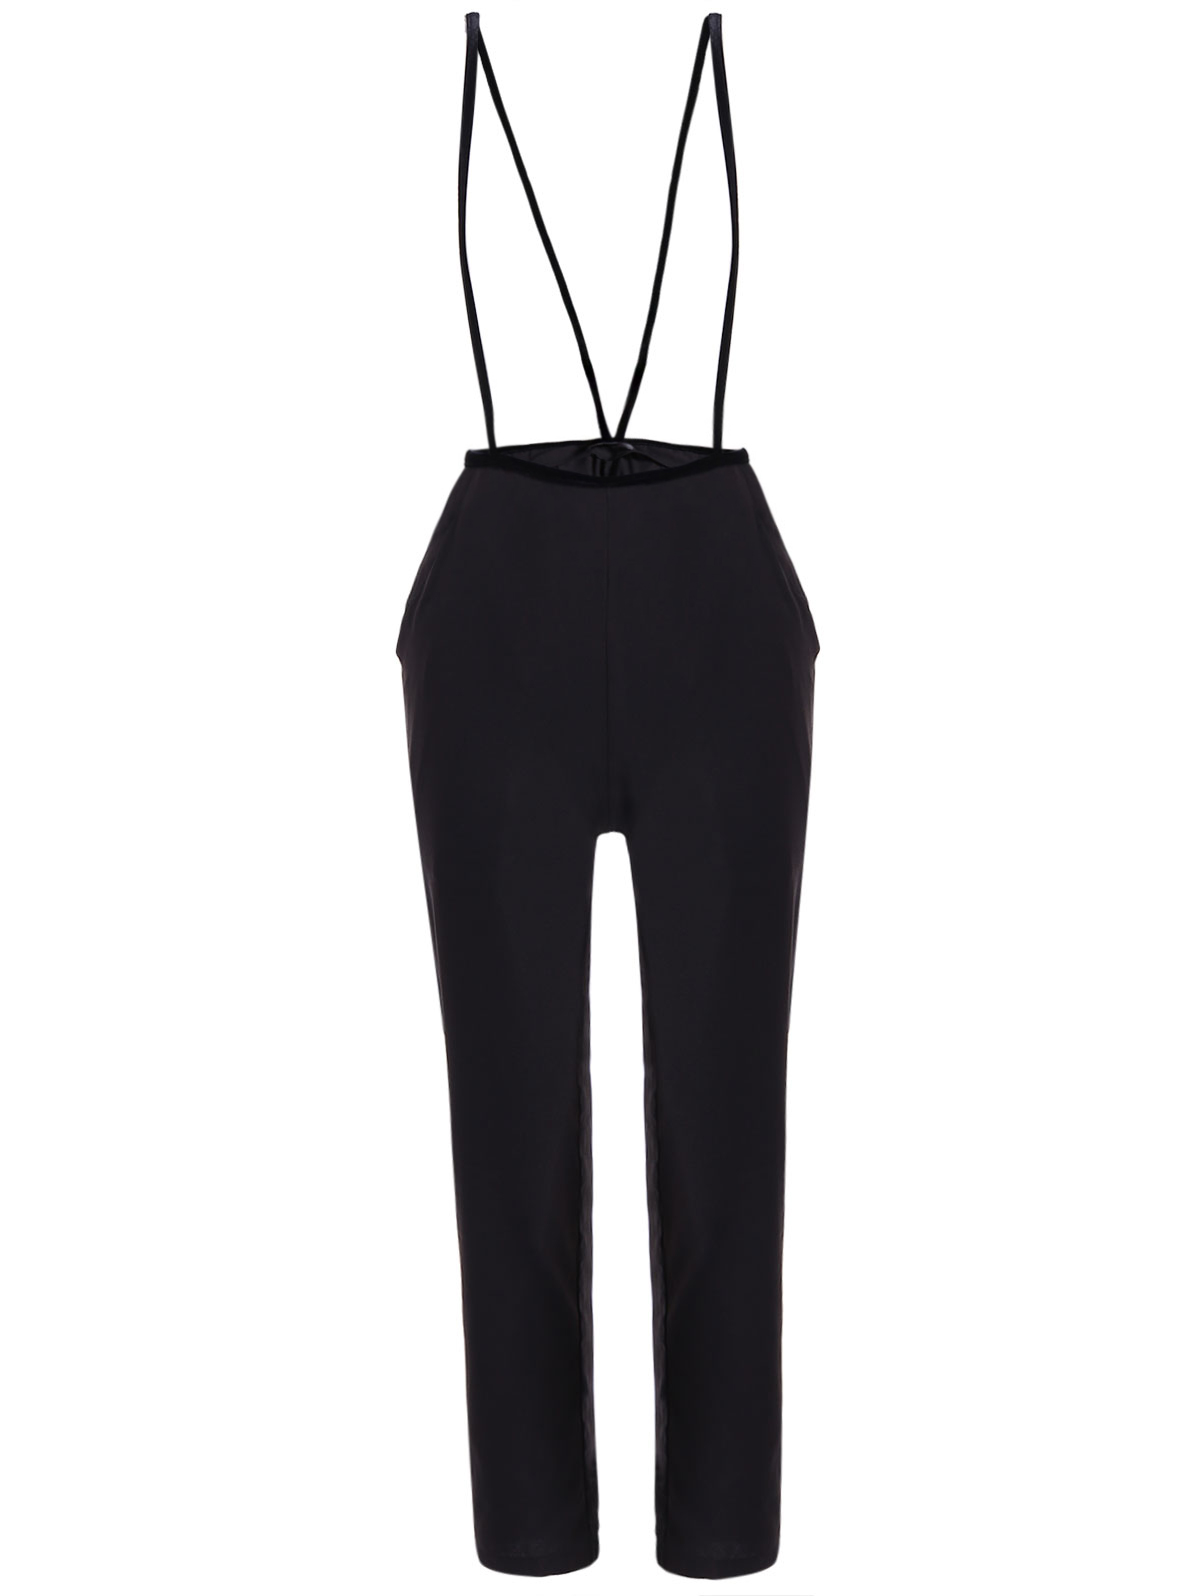 OL High Waisted Black Pencil Pants